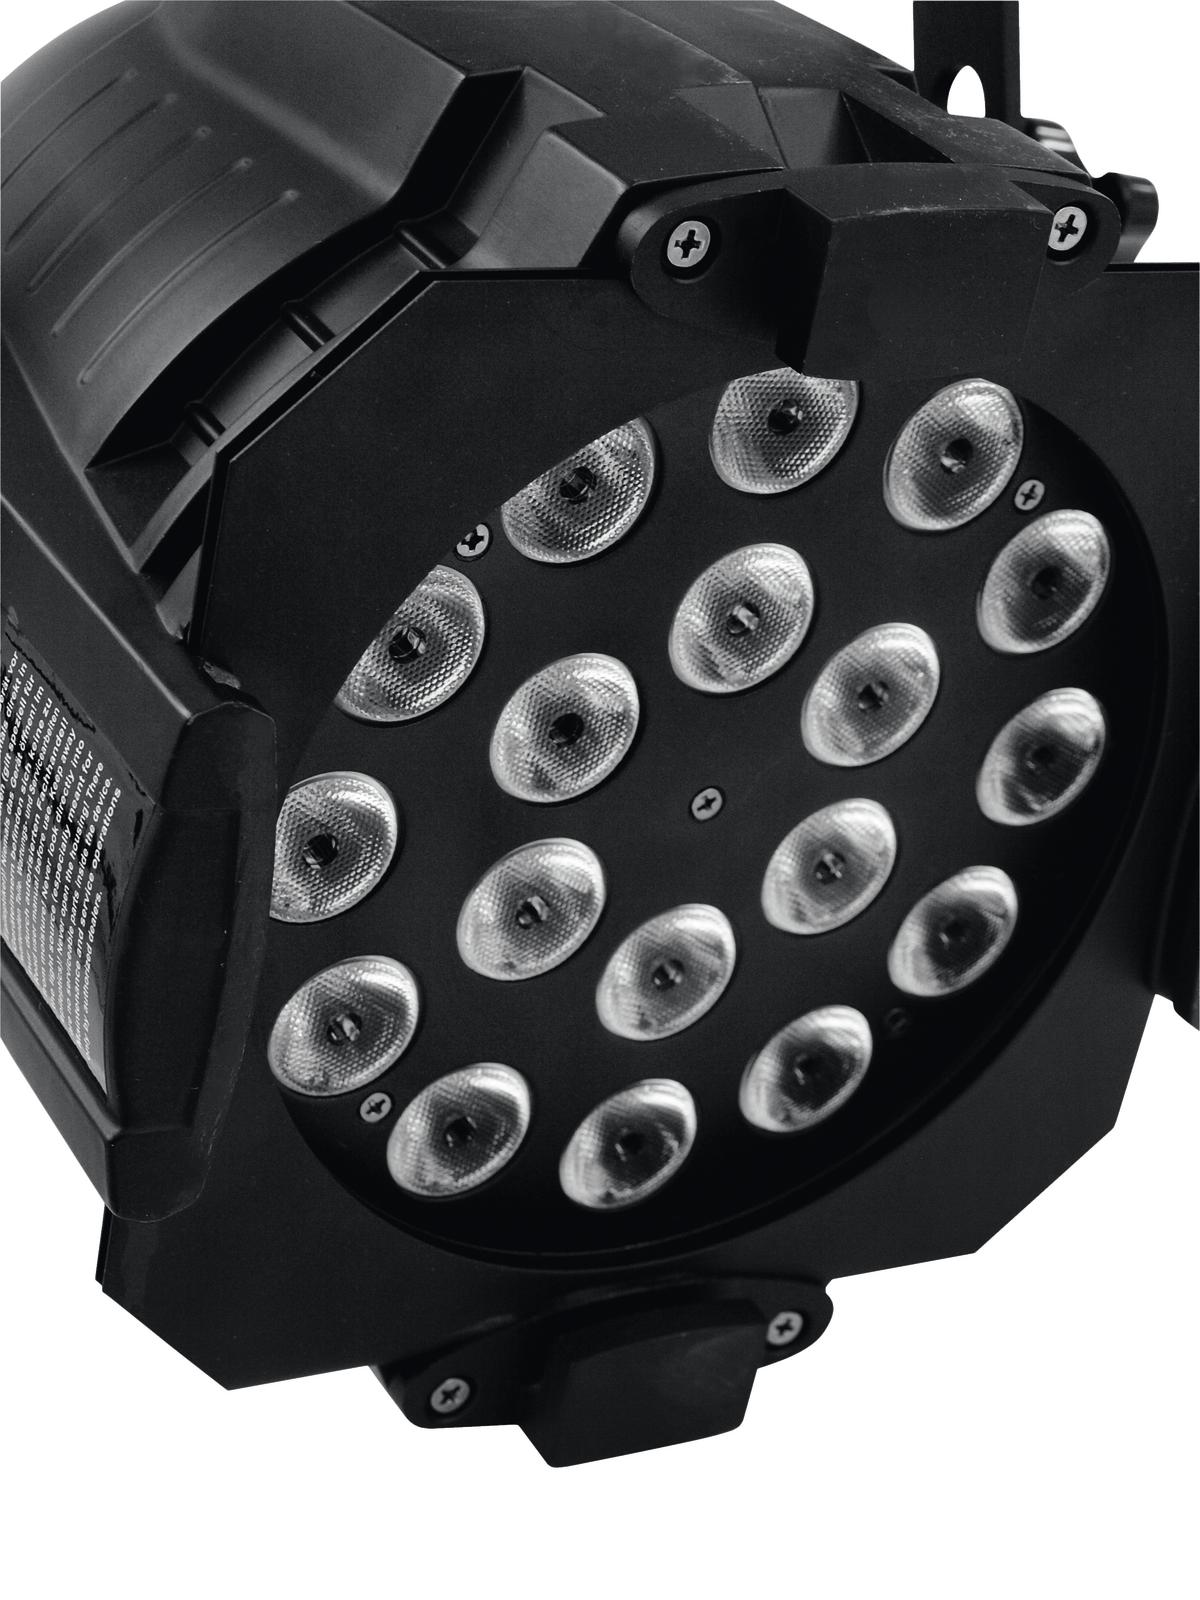 EUROLITE LED ML-56 QLC RGBW/RG